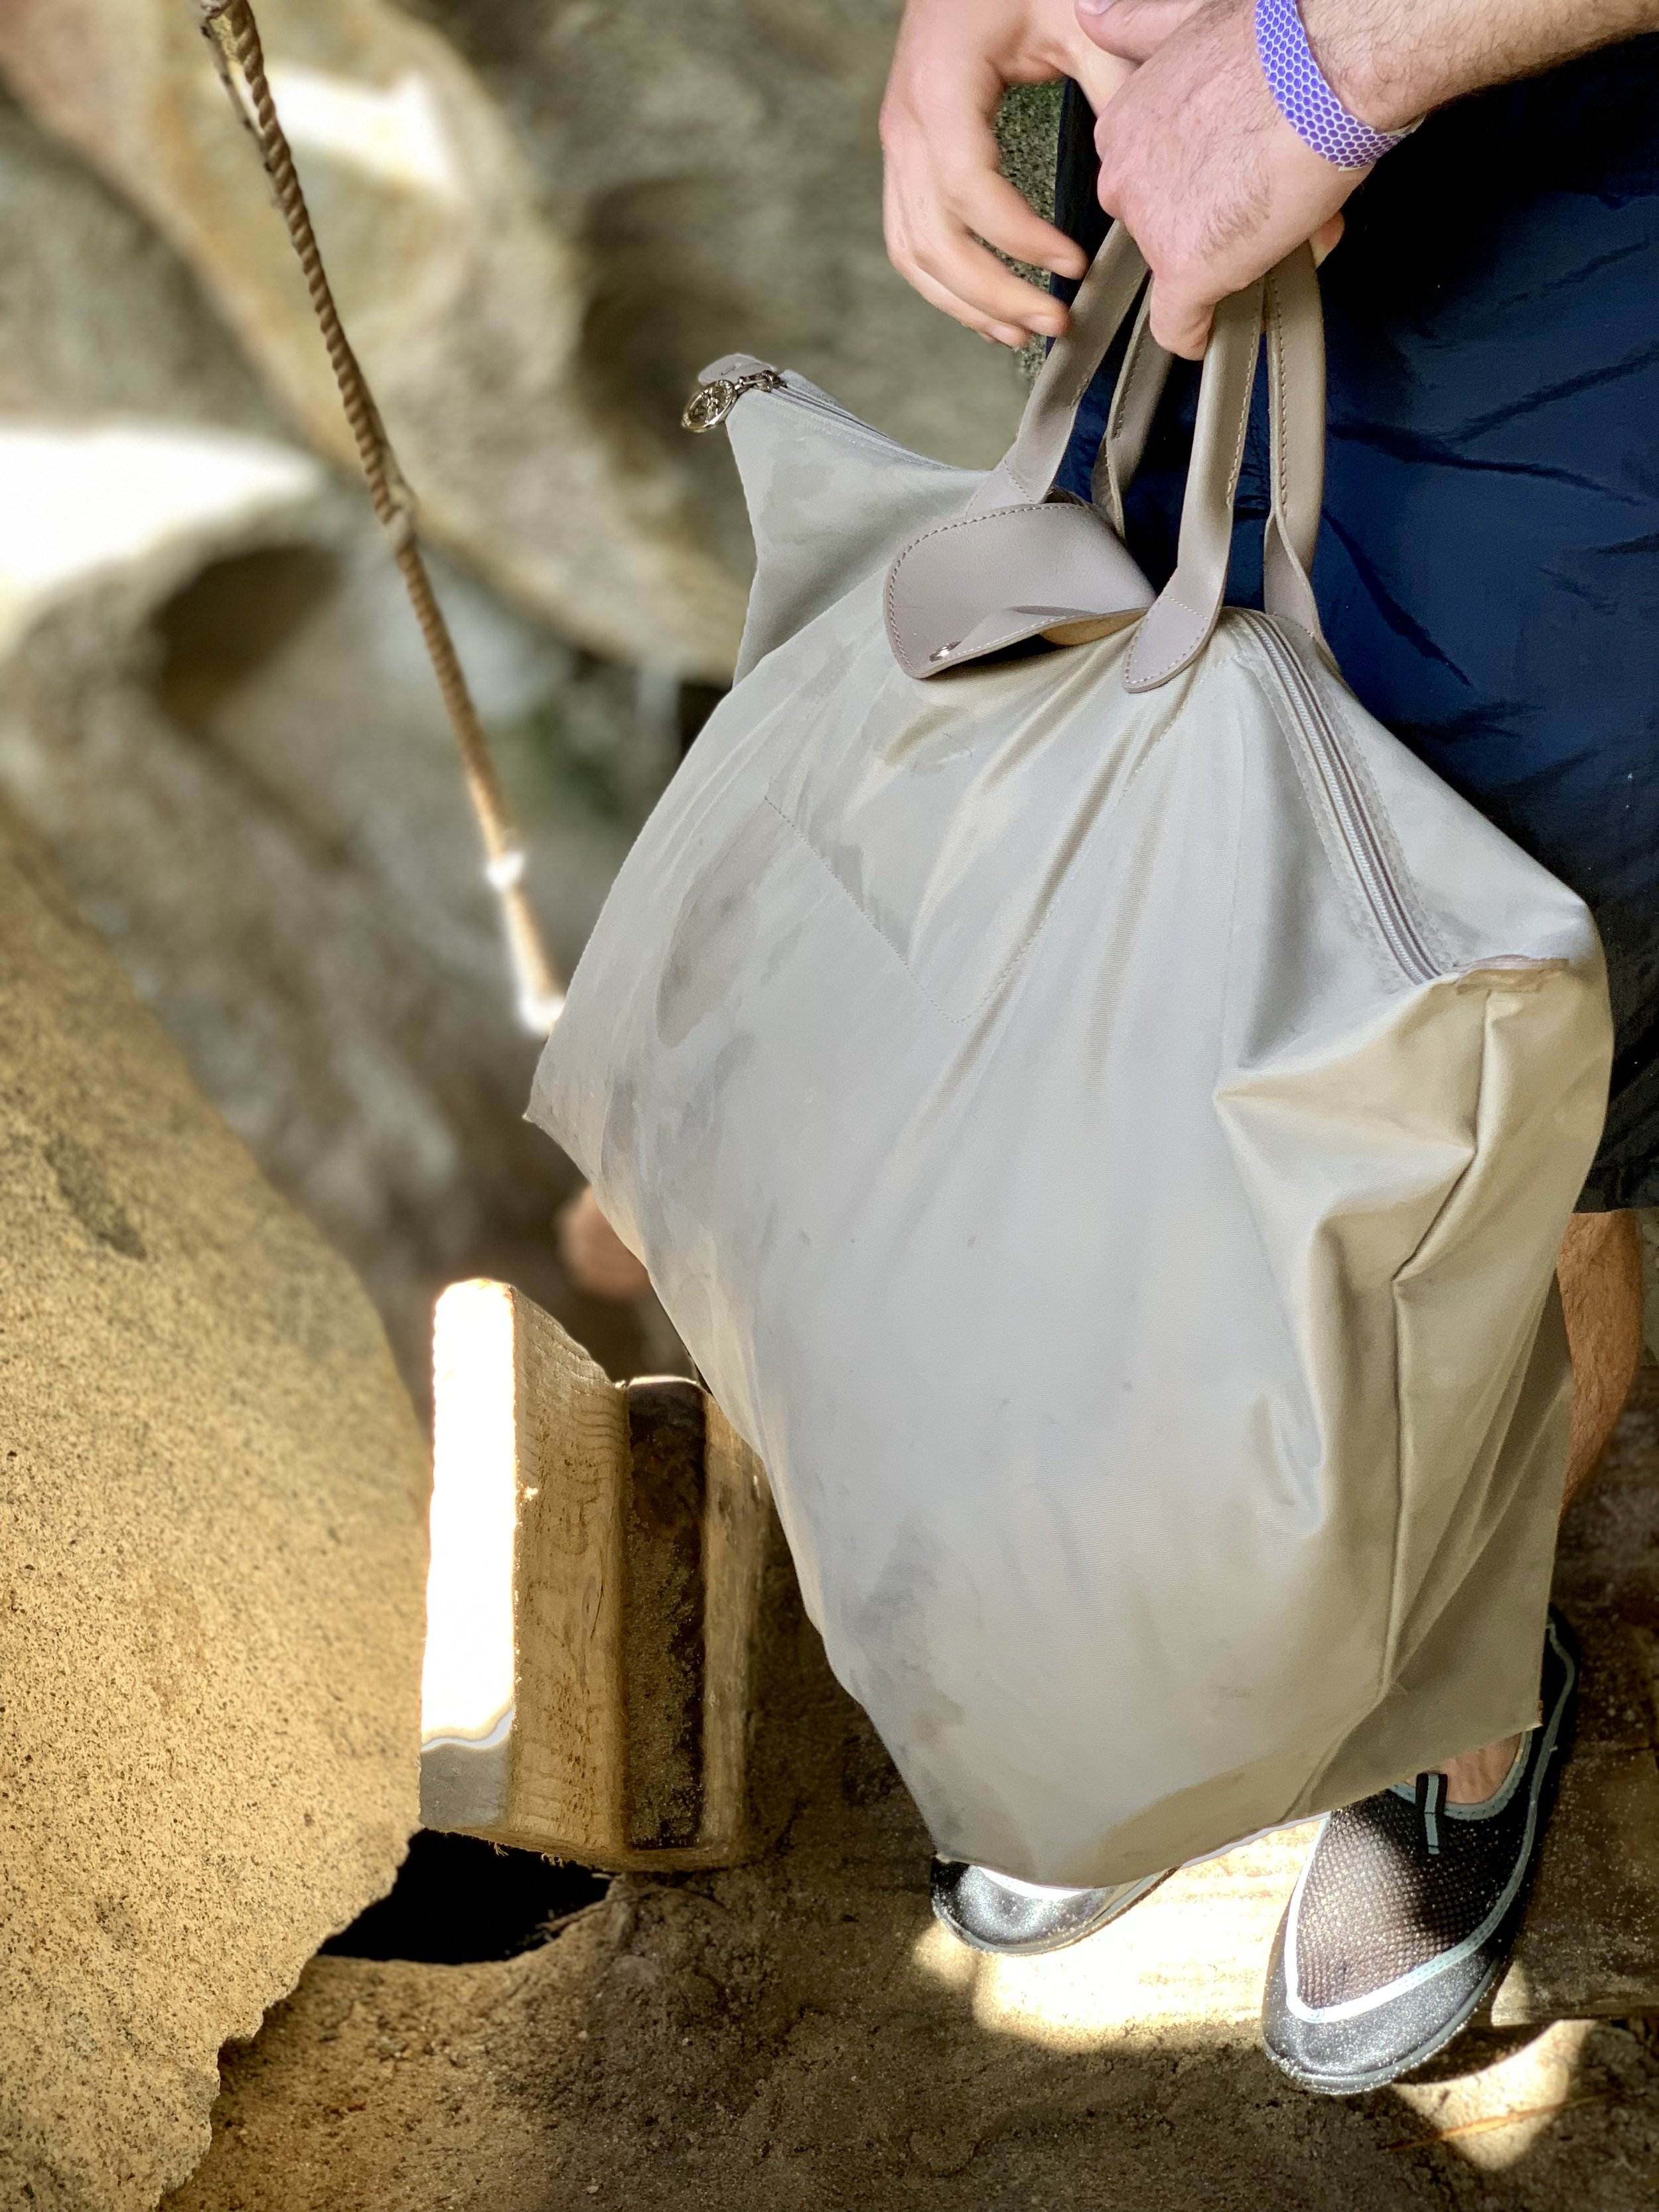 Do not carry heavy bags and items, it will make your excursion very unpleasant.